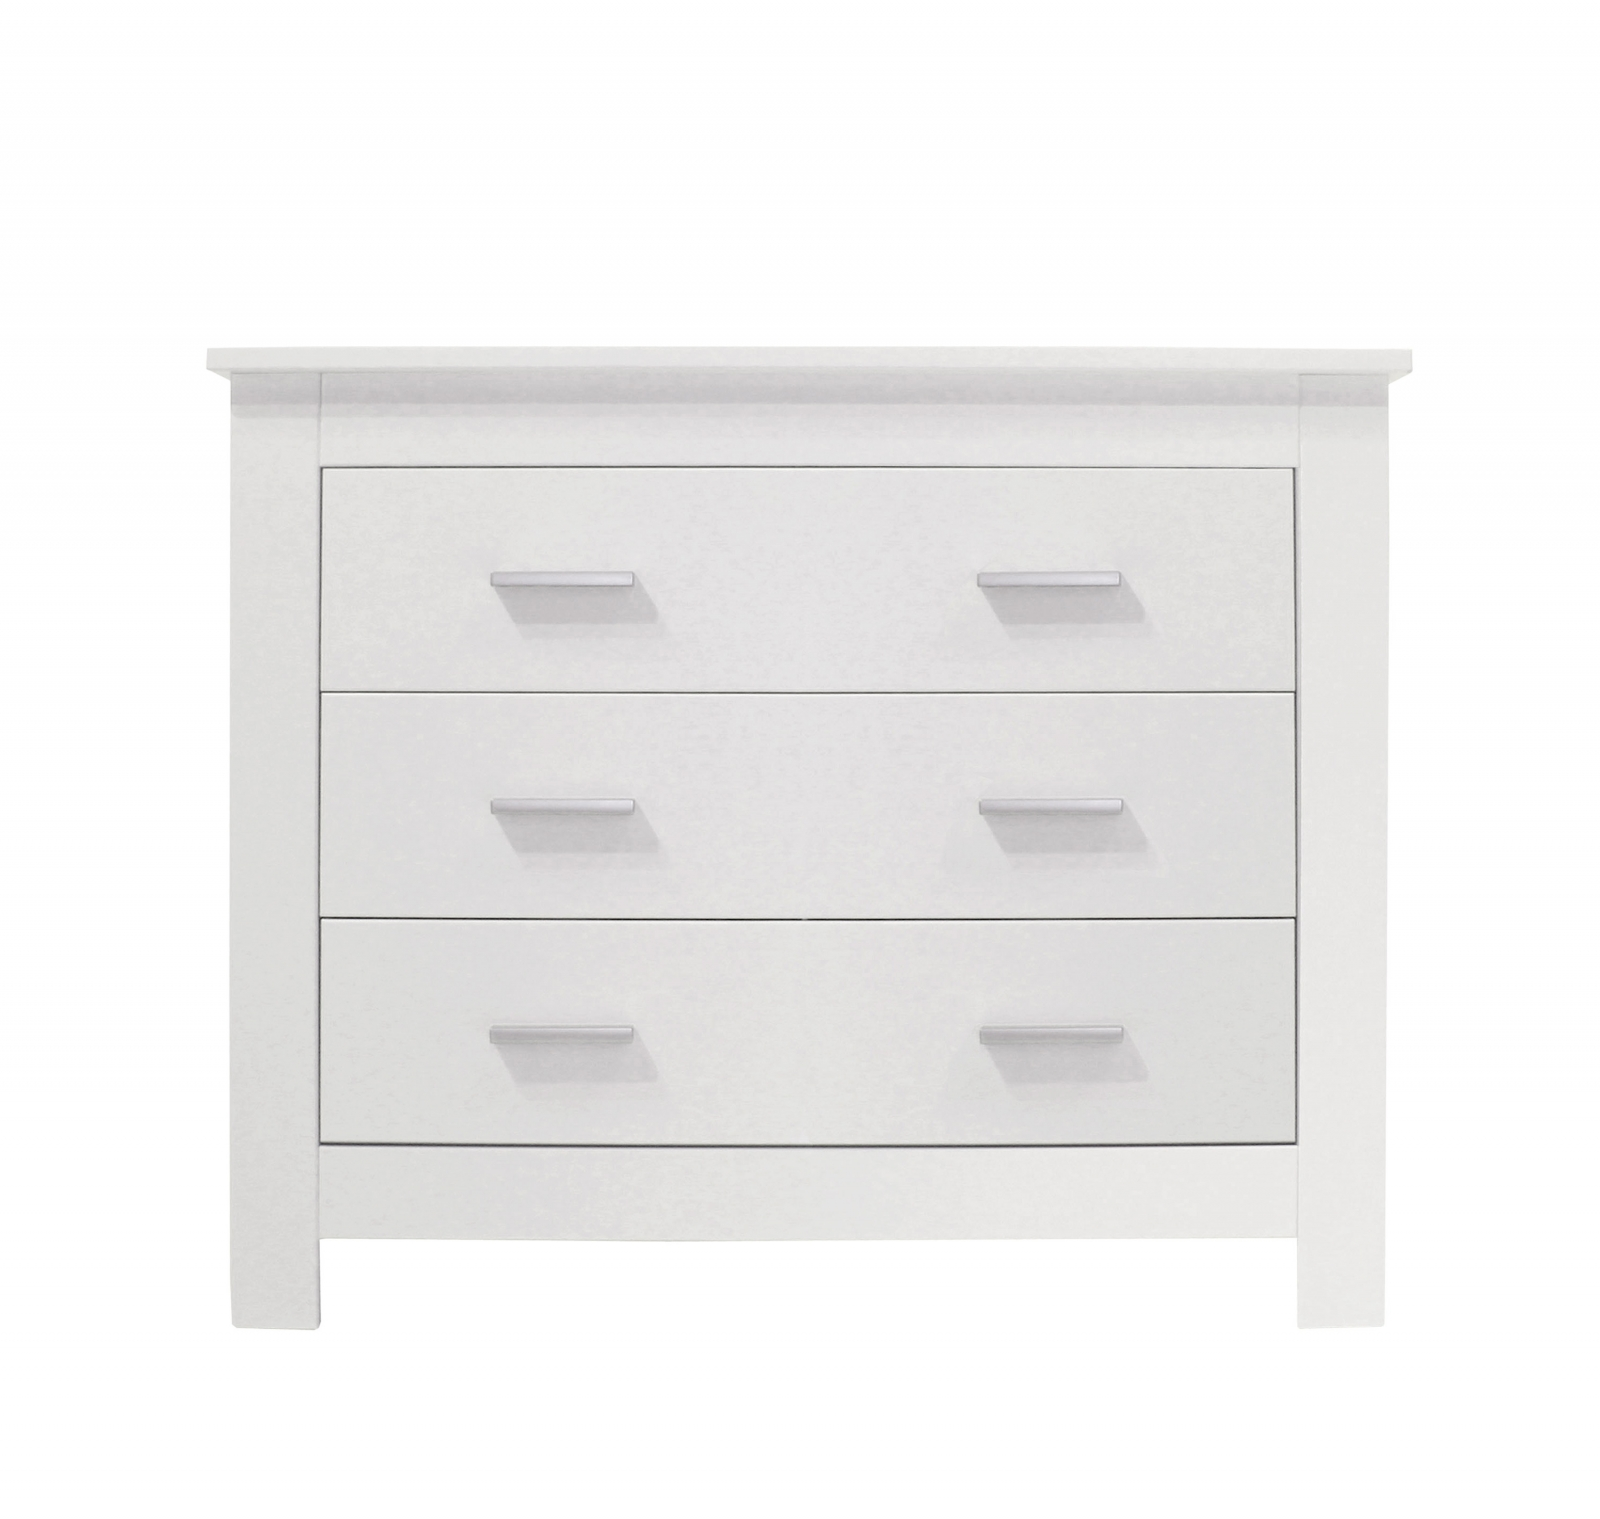 Bopita Cobi Commode 3 Laden